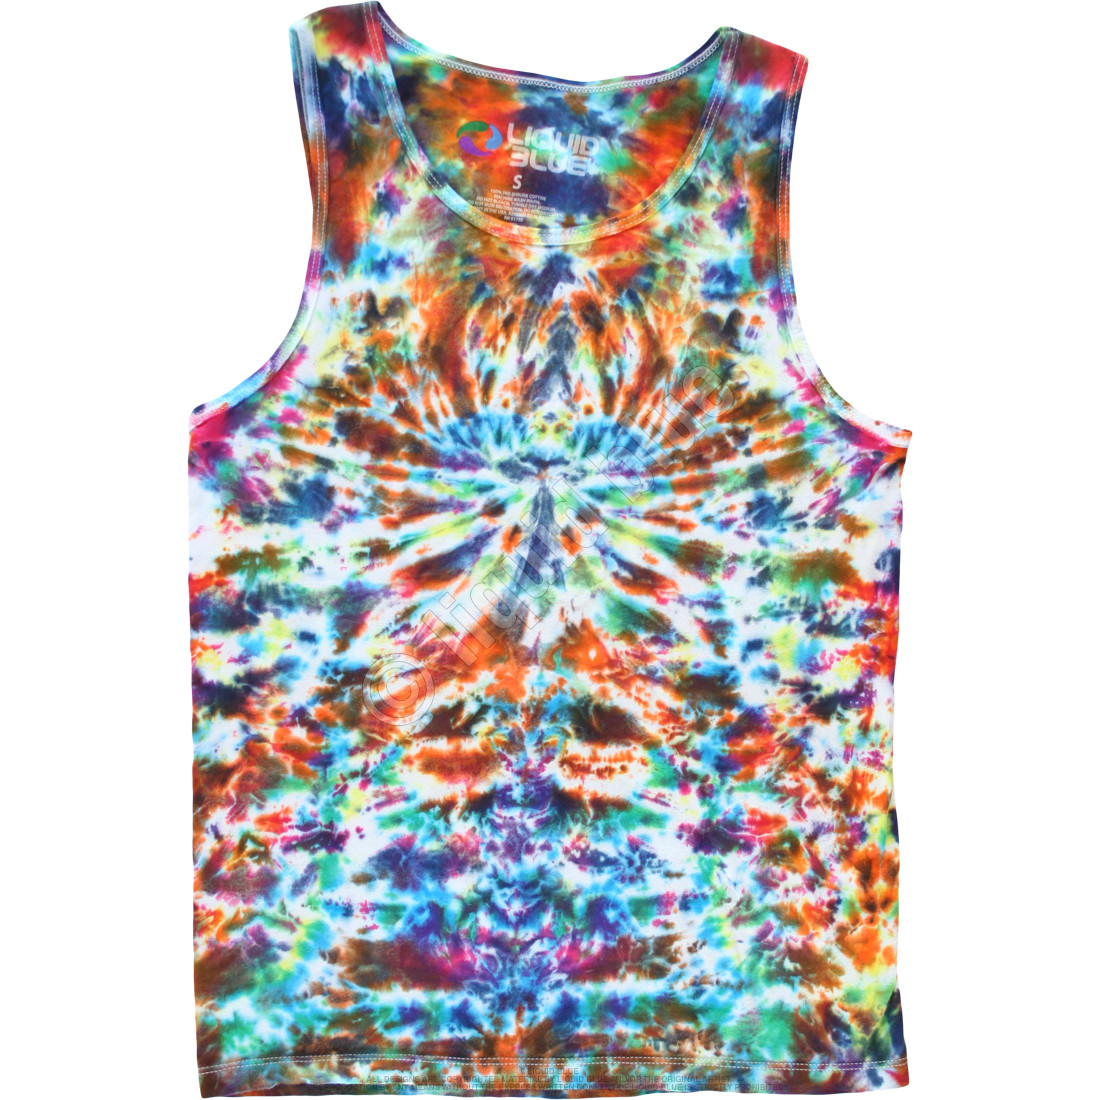 046ab06e6250e Crazy Krinkle Unprinted Tie-Dye Tank Top T-Shirt Tee Liquid Blue